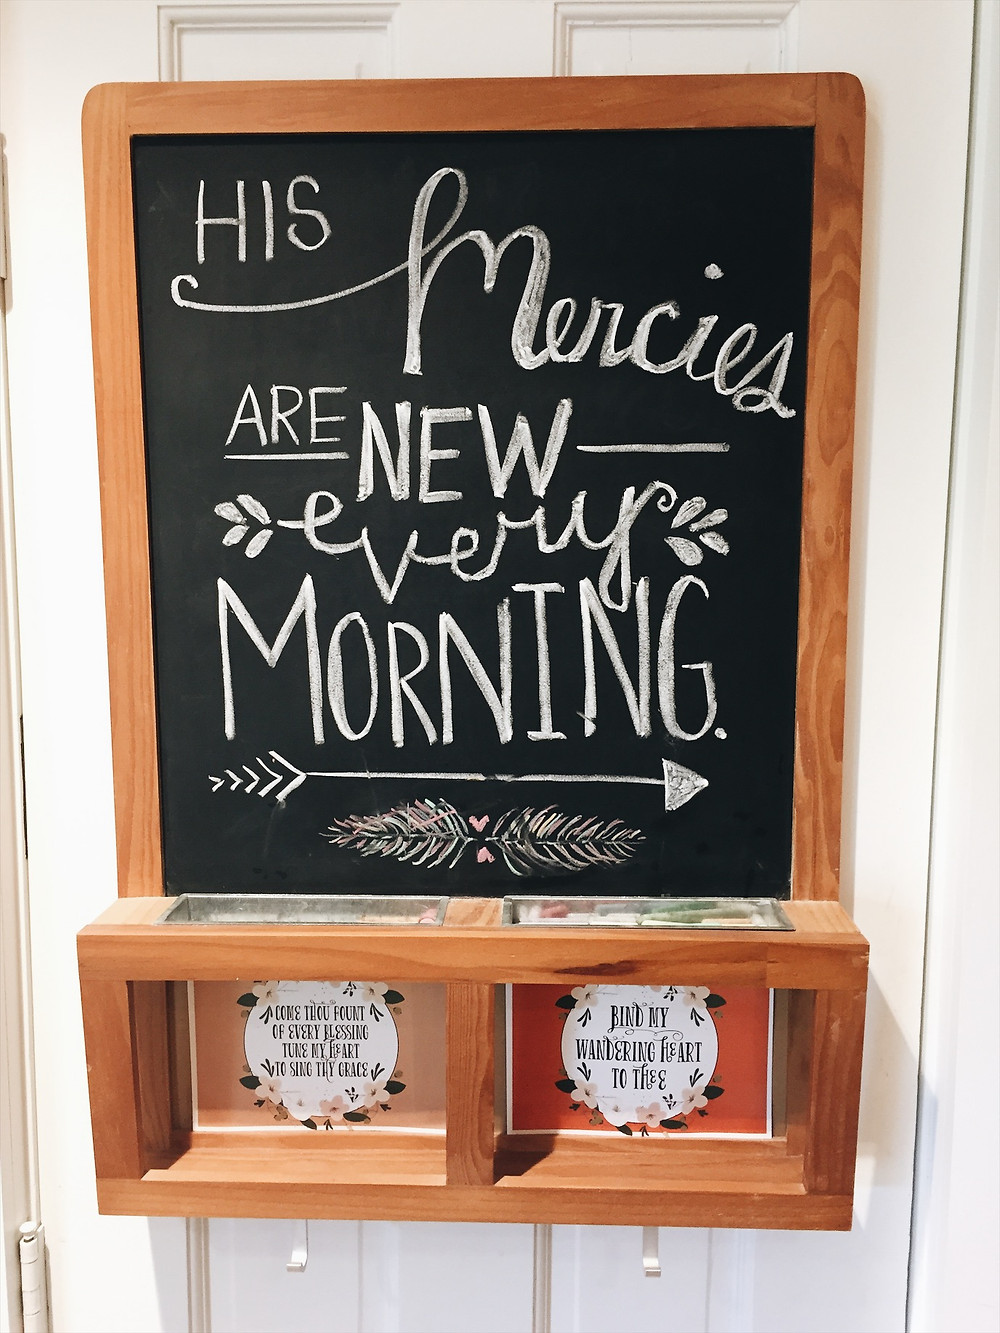 It's fun to change up verses on my kitchen blackboard. Love to see them all the time!